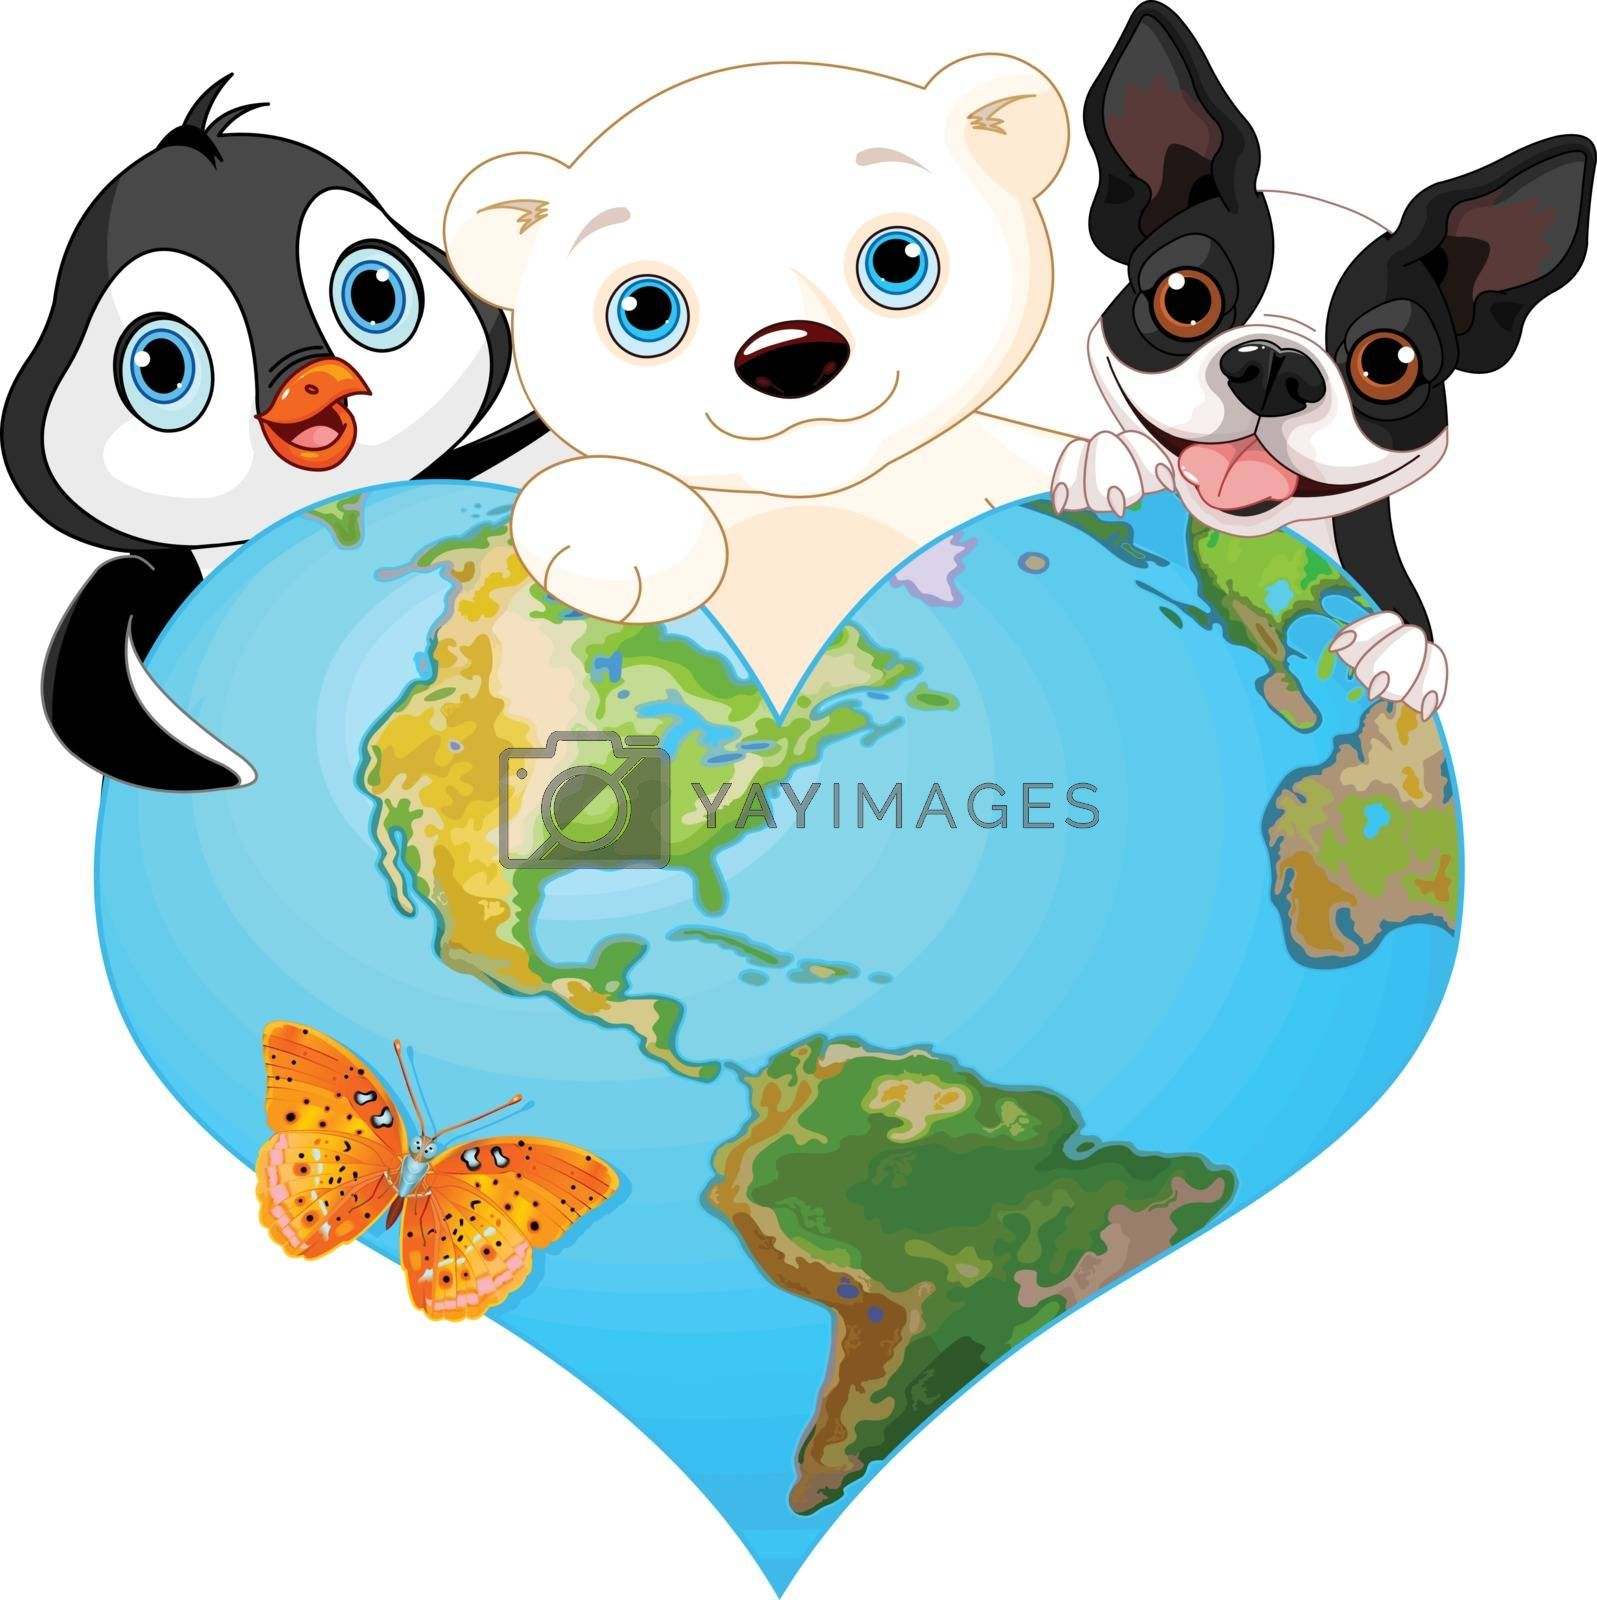 Royalty free image of Earth heart with animals by Dazdraperma